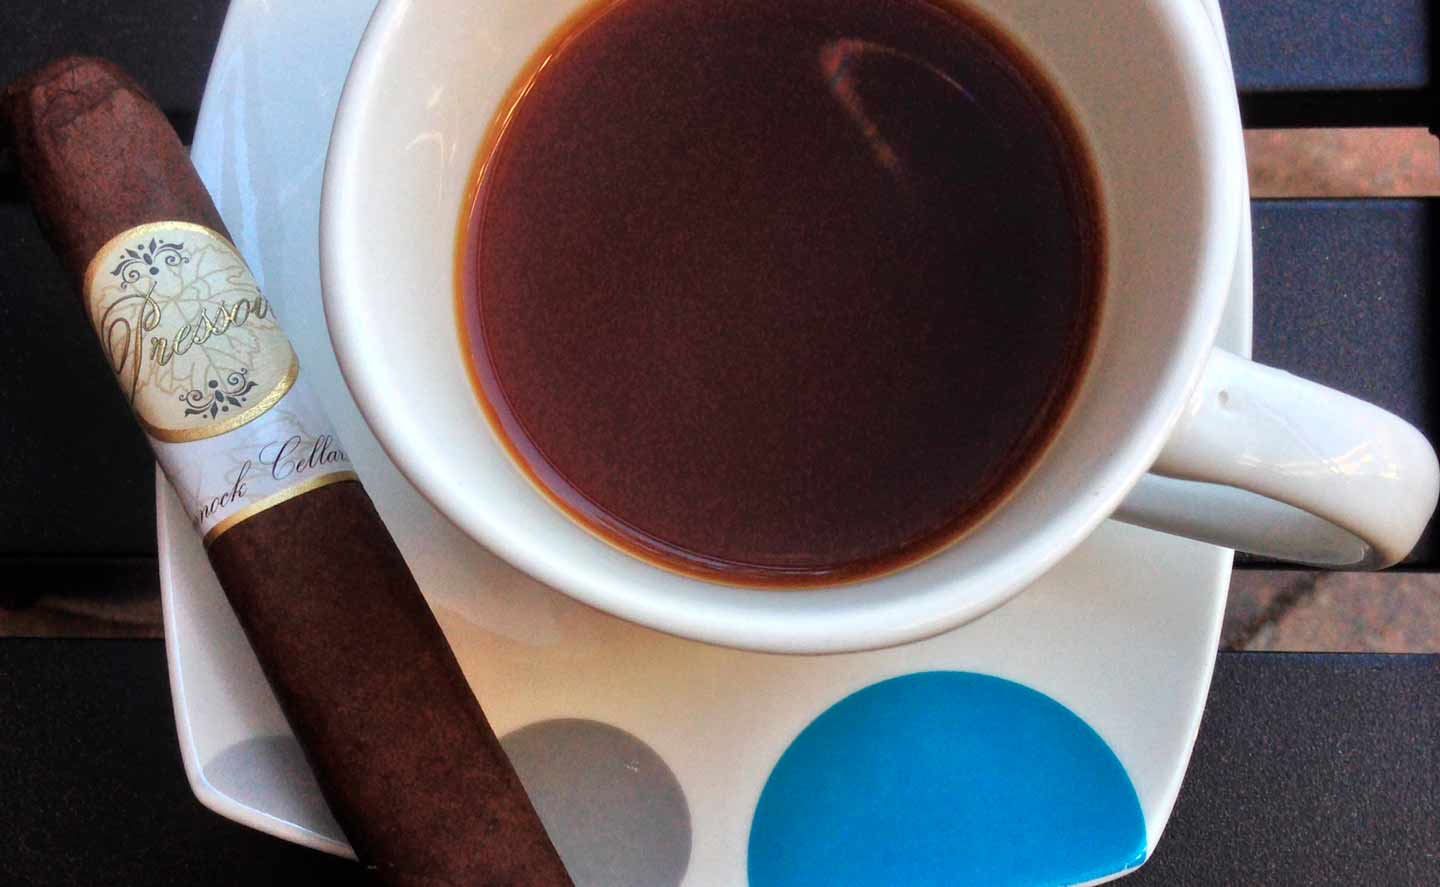 Pressoir cigar with a cup of coffee - Chinnock Cellars Cigars